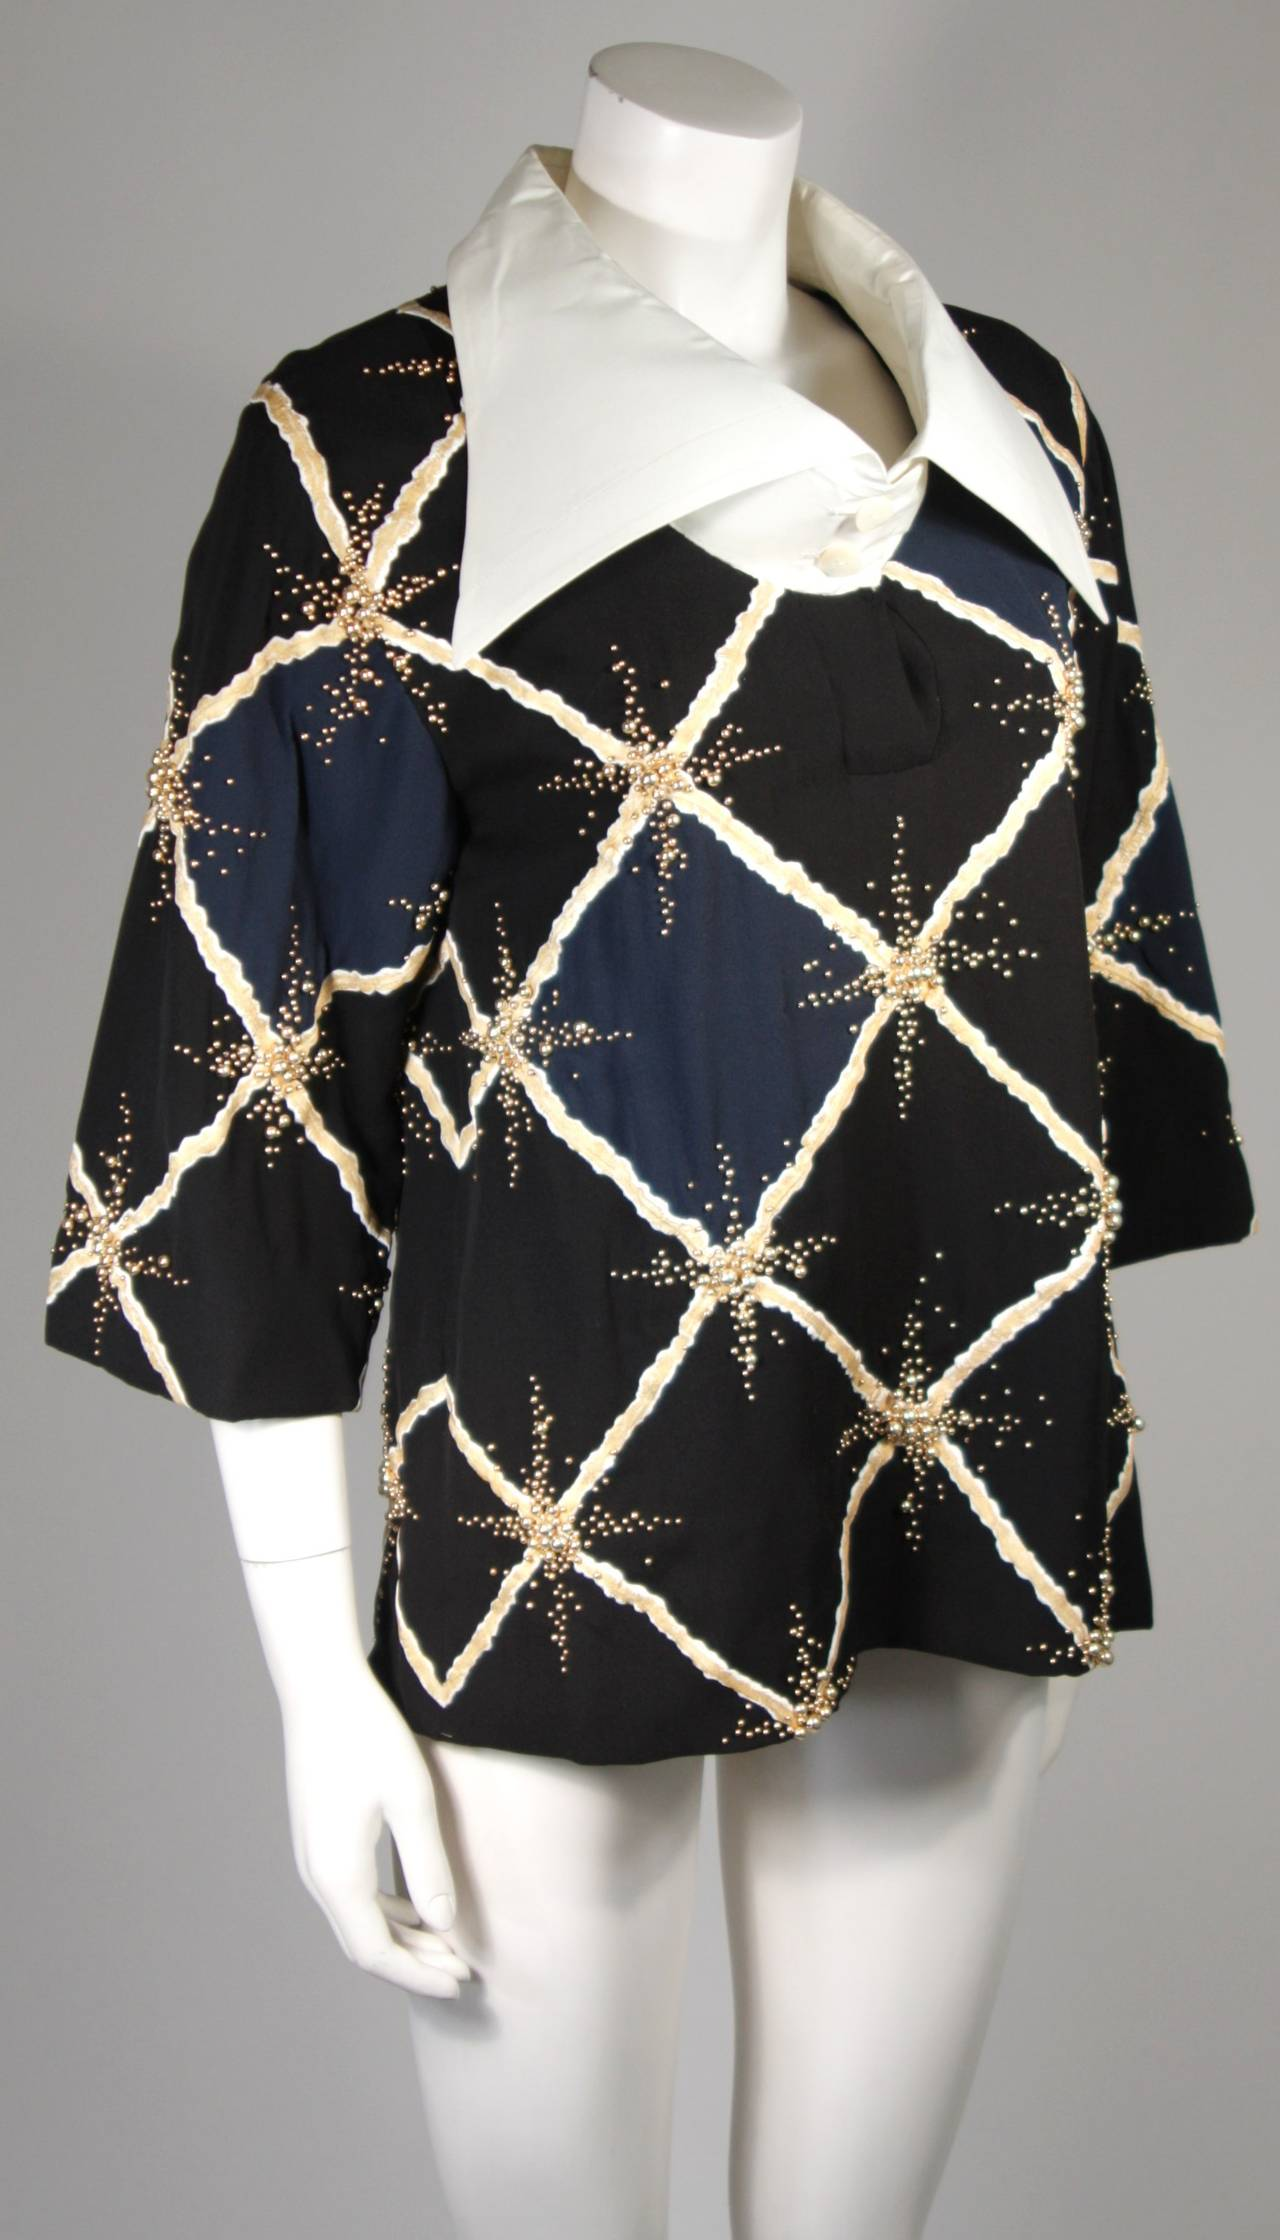 Pierre Balmain Couture Embellished Blouse with Exaggerated Collar  Size Small In Excellent Condition For Sale In Los Angeles, CA